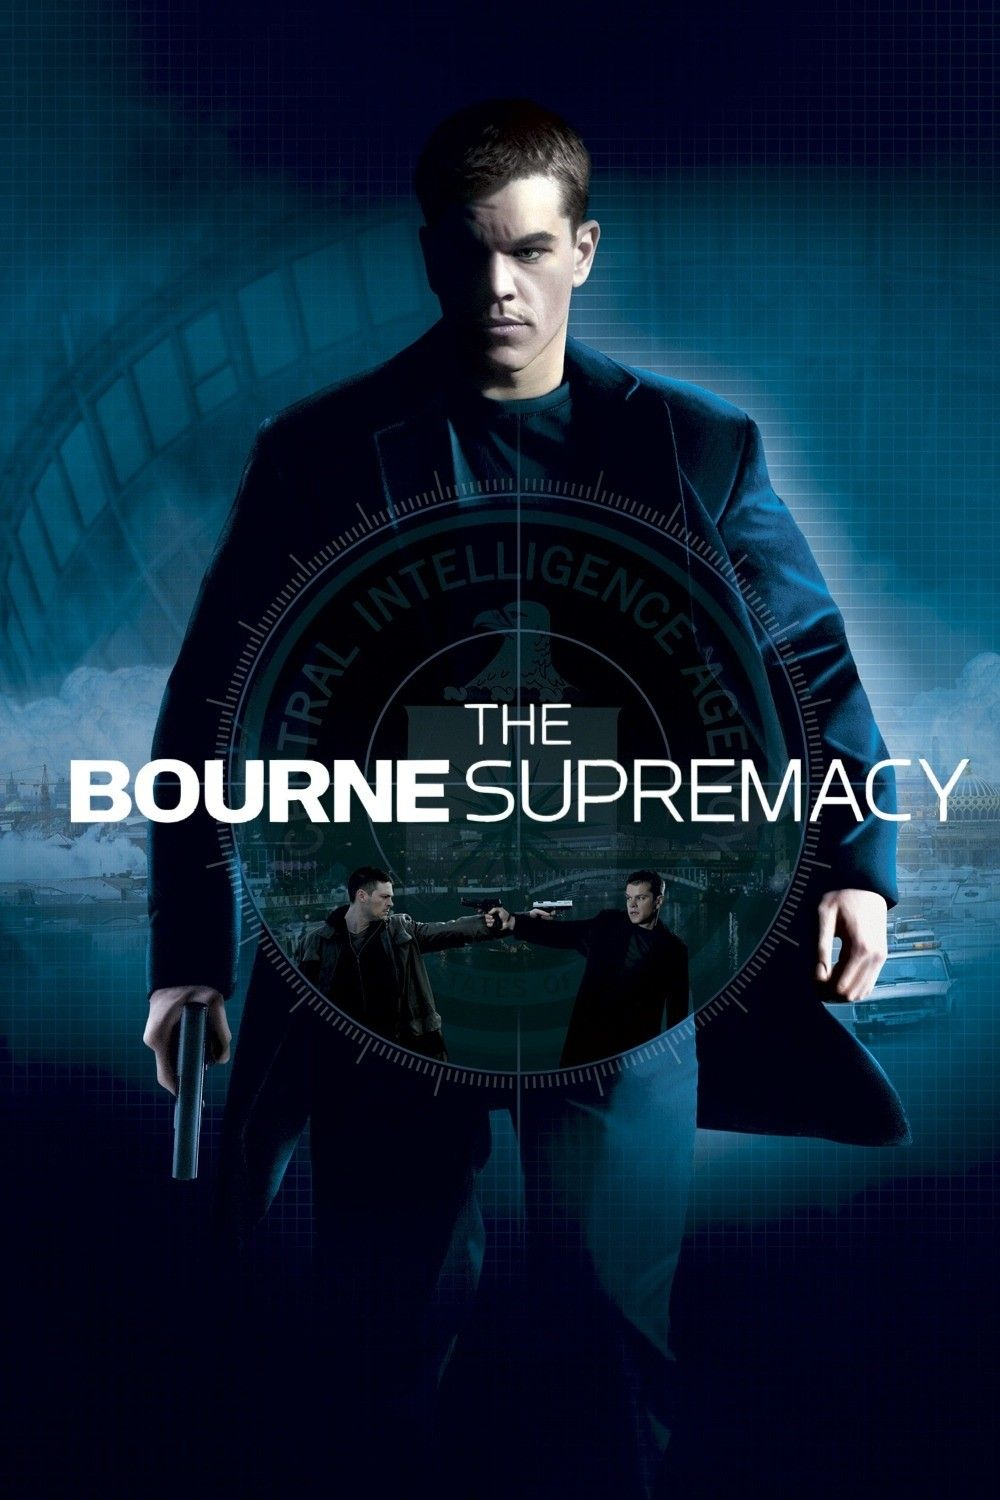 f09c37e2e The Bourne Supremacy | Now Playing... | Bourne supremacy, Bourne ...